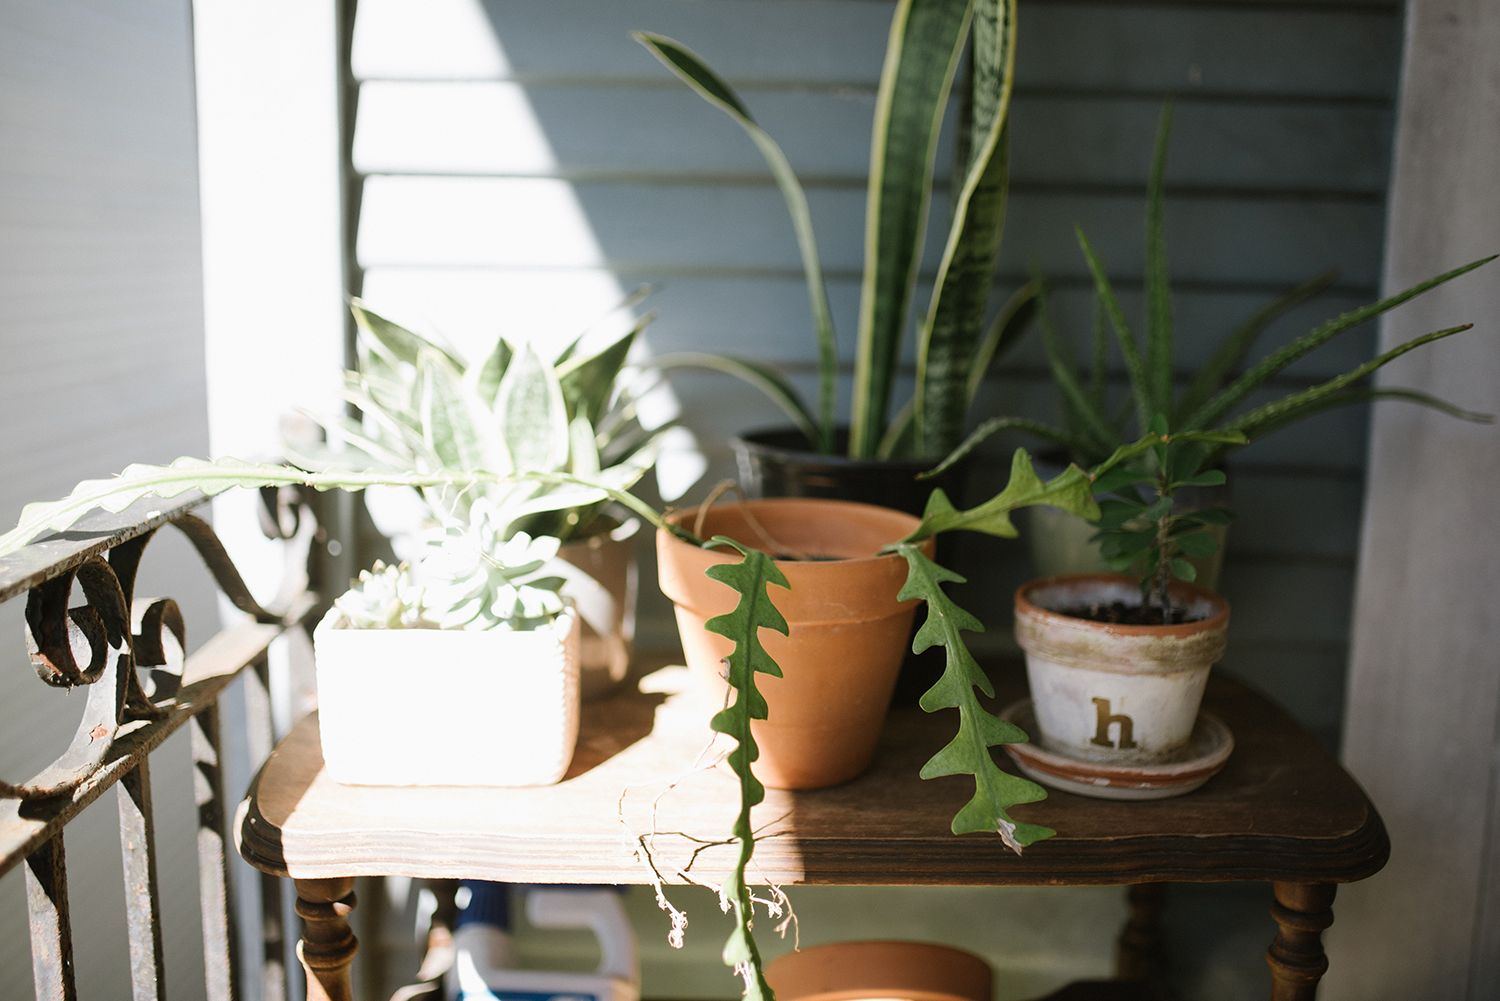 spruce up your home with low maintenance plants